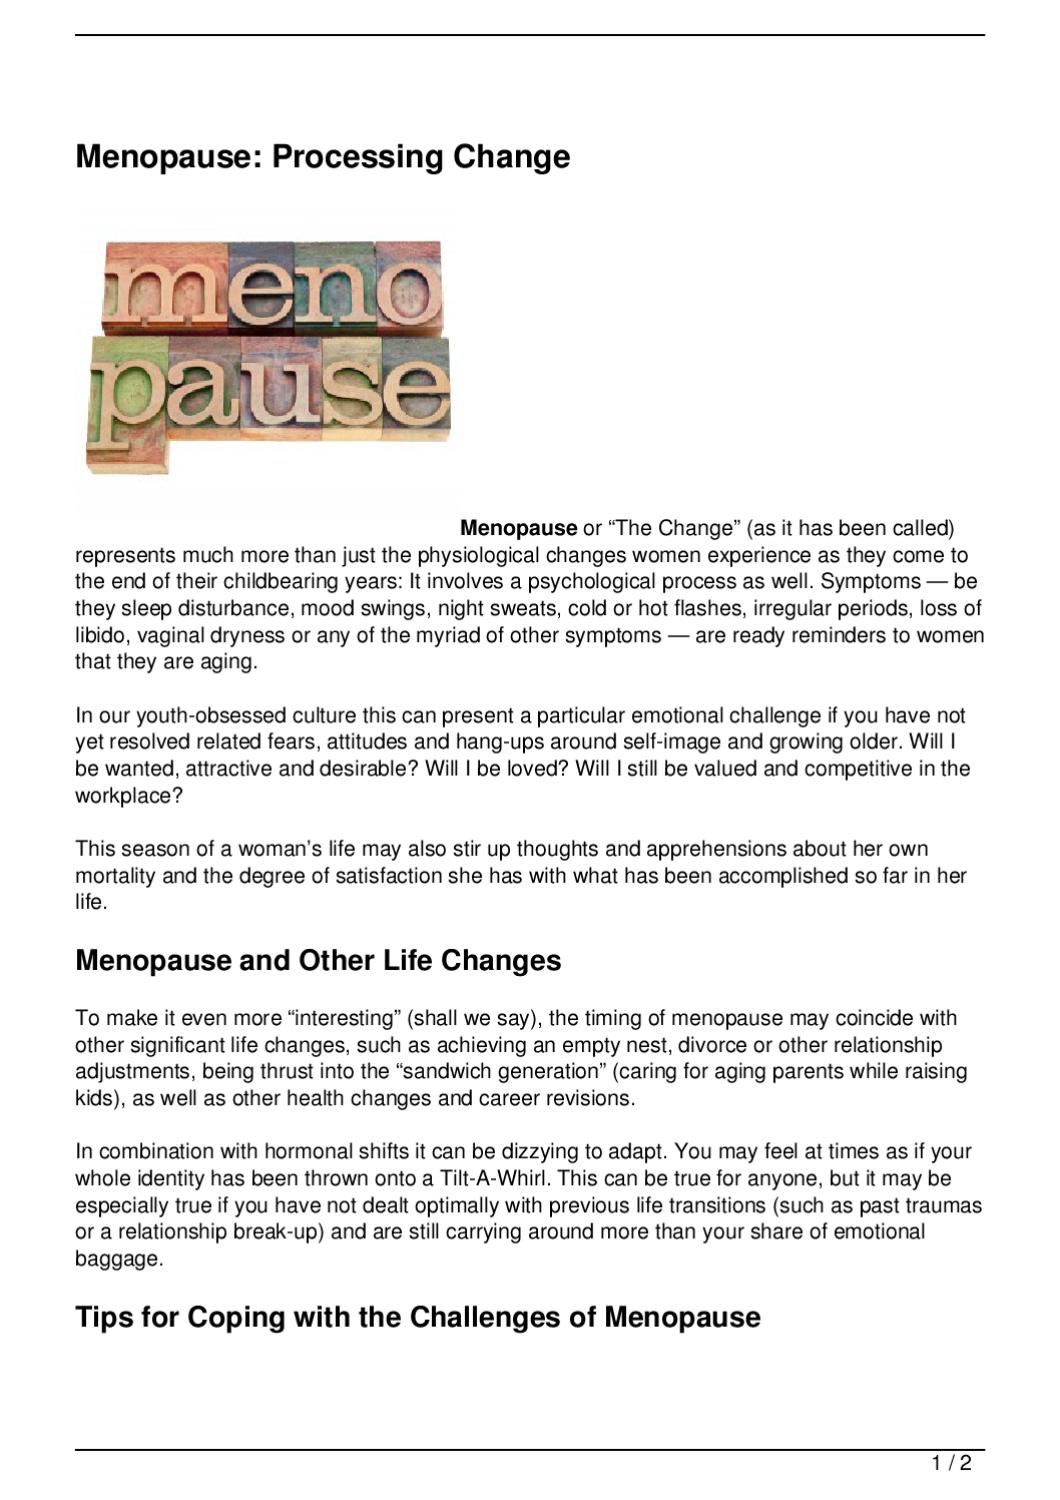 Refocusing Your Identity in Menopause recommend